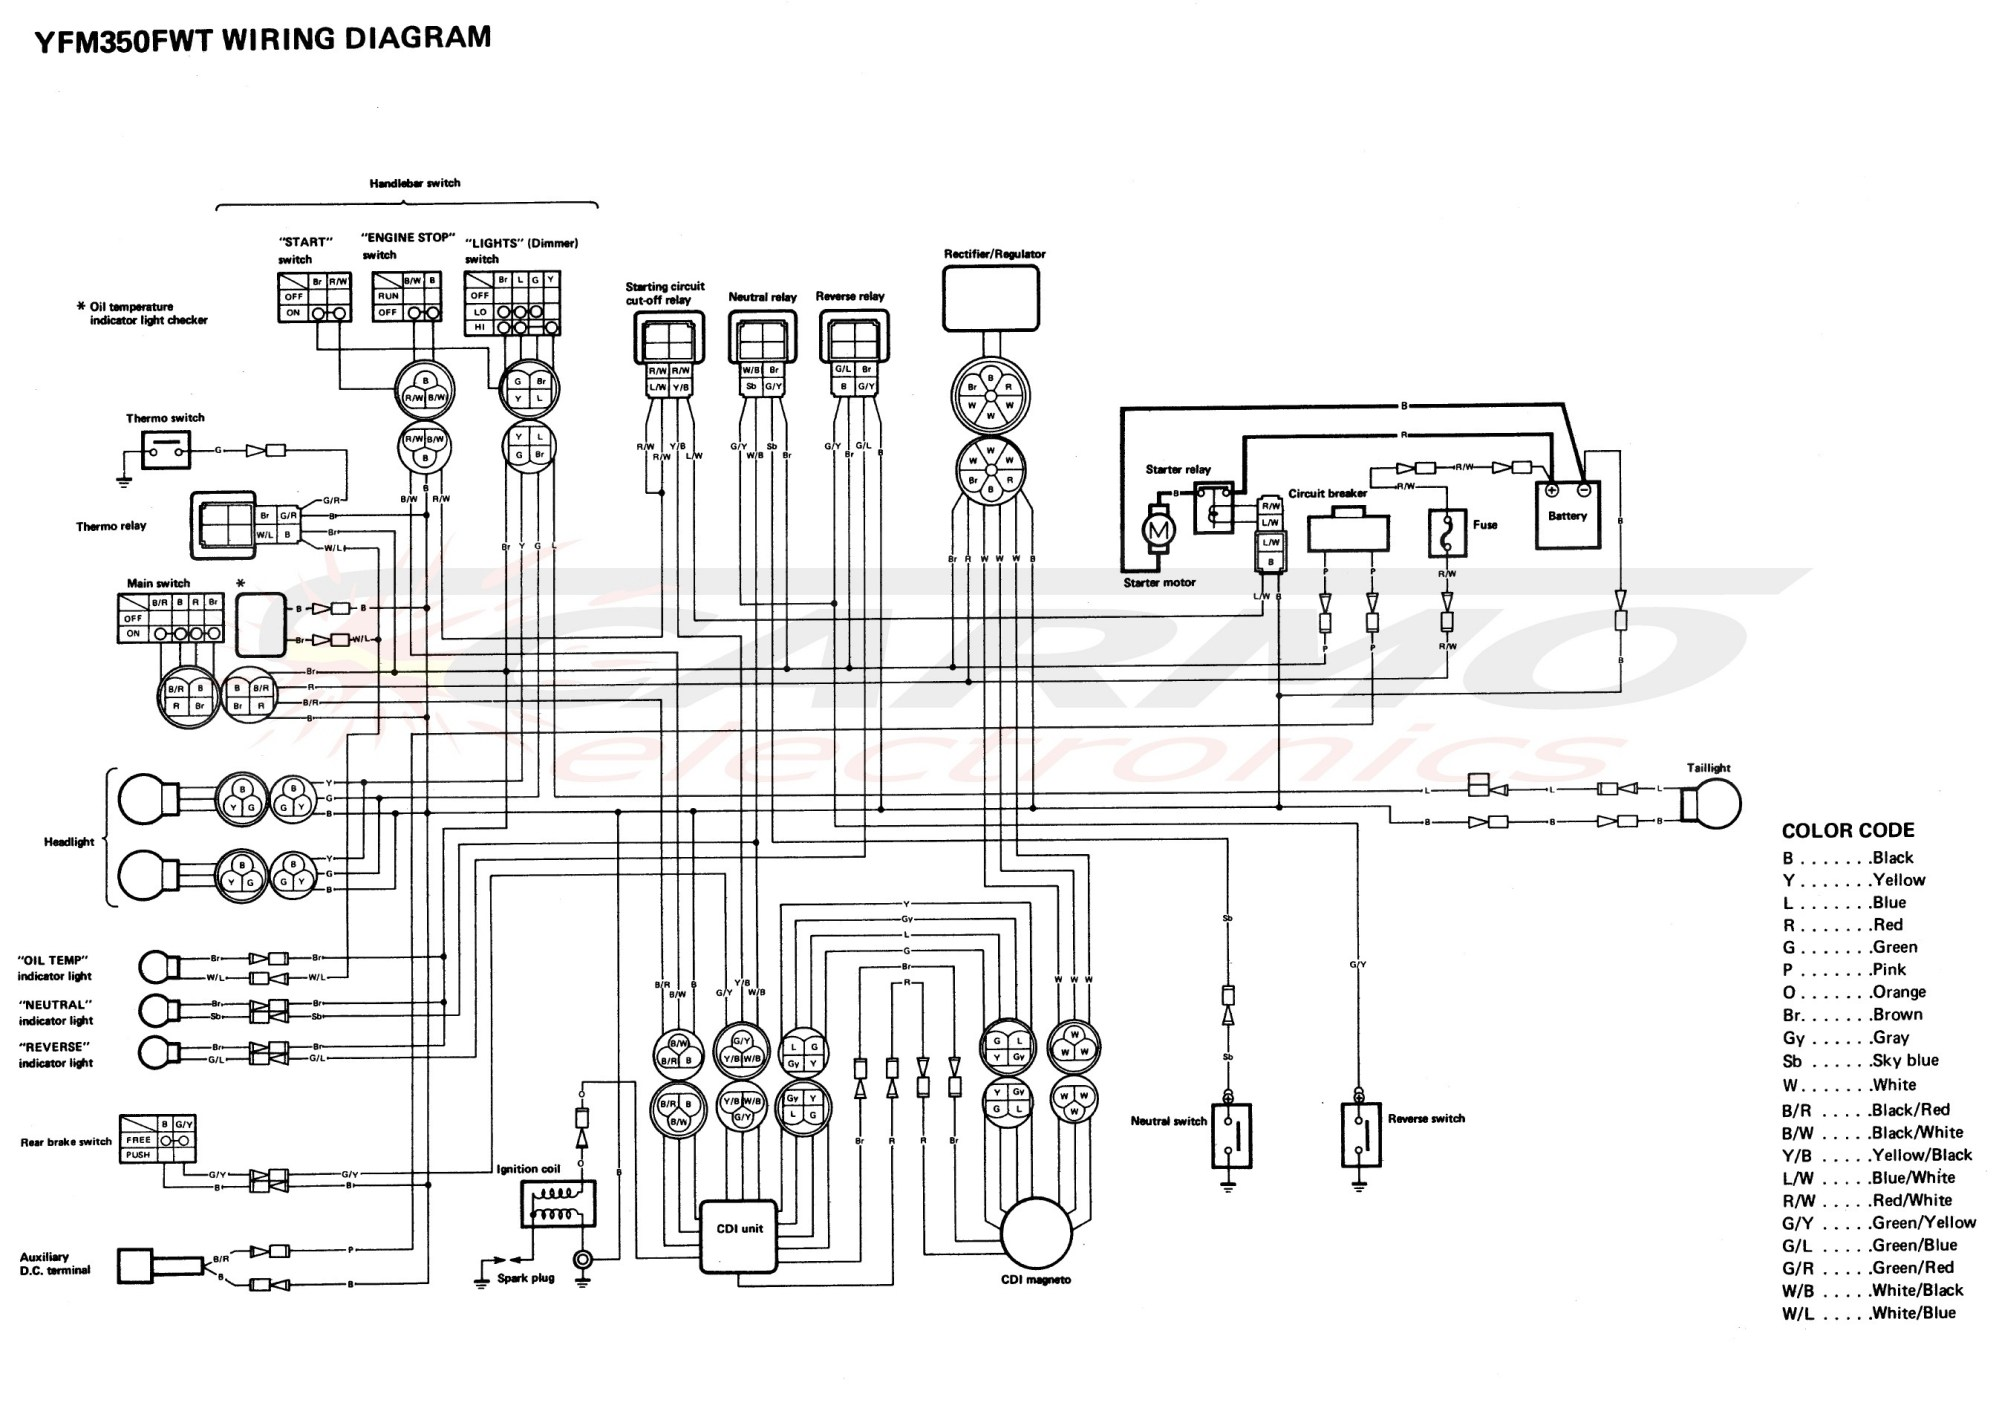 hight resolution of yamaha yfm350 engine wiring diagram 35 wiring diagram 1986 yamaha moto 4 yamaha moto 4 parts